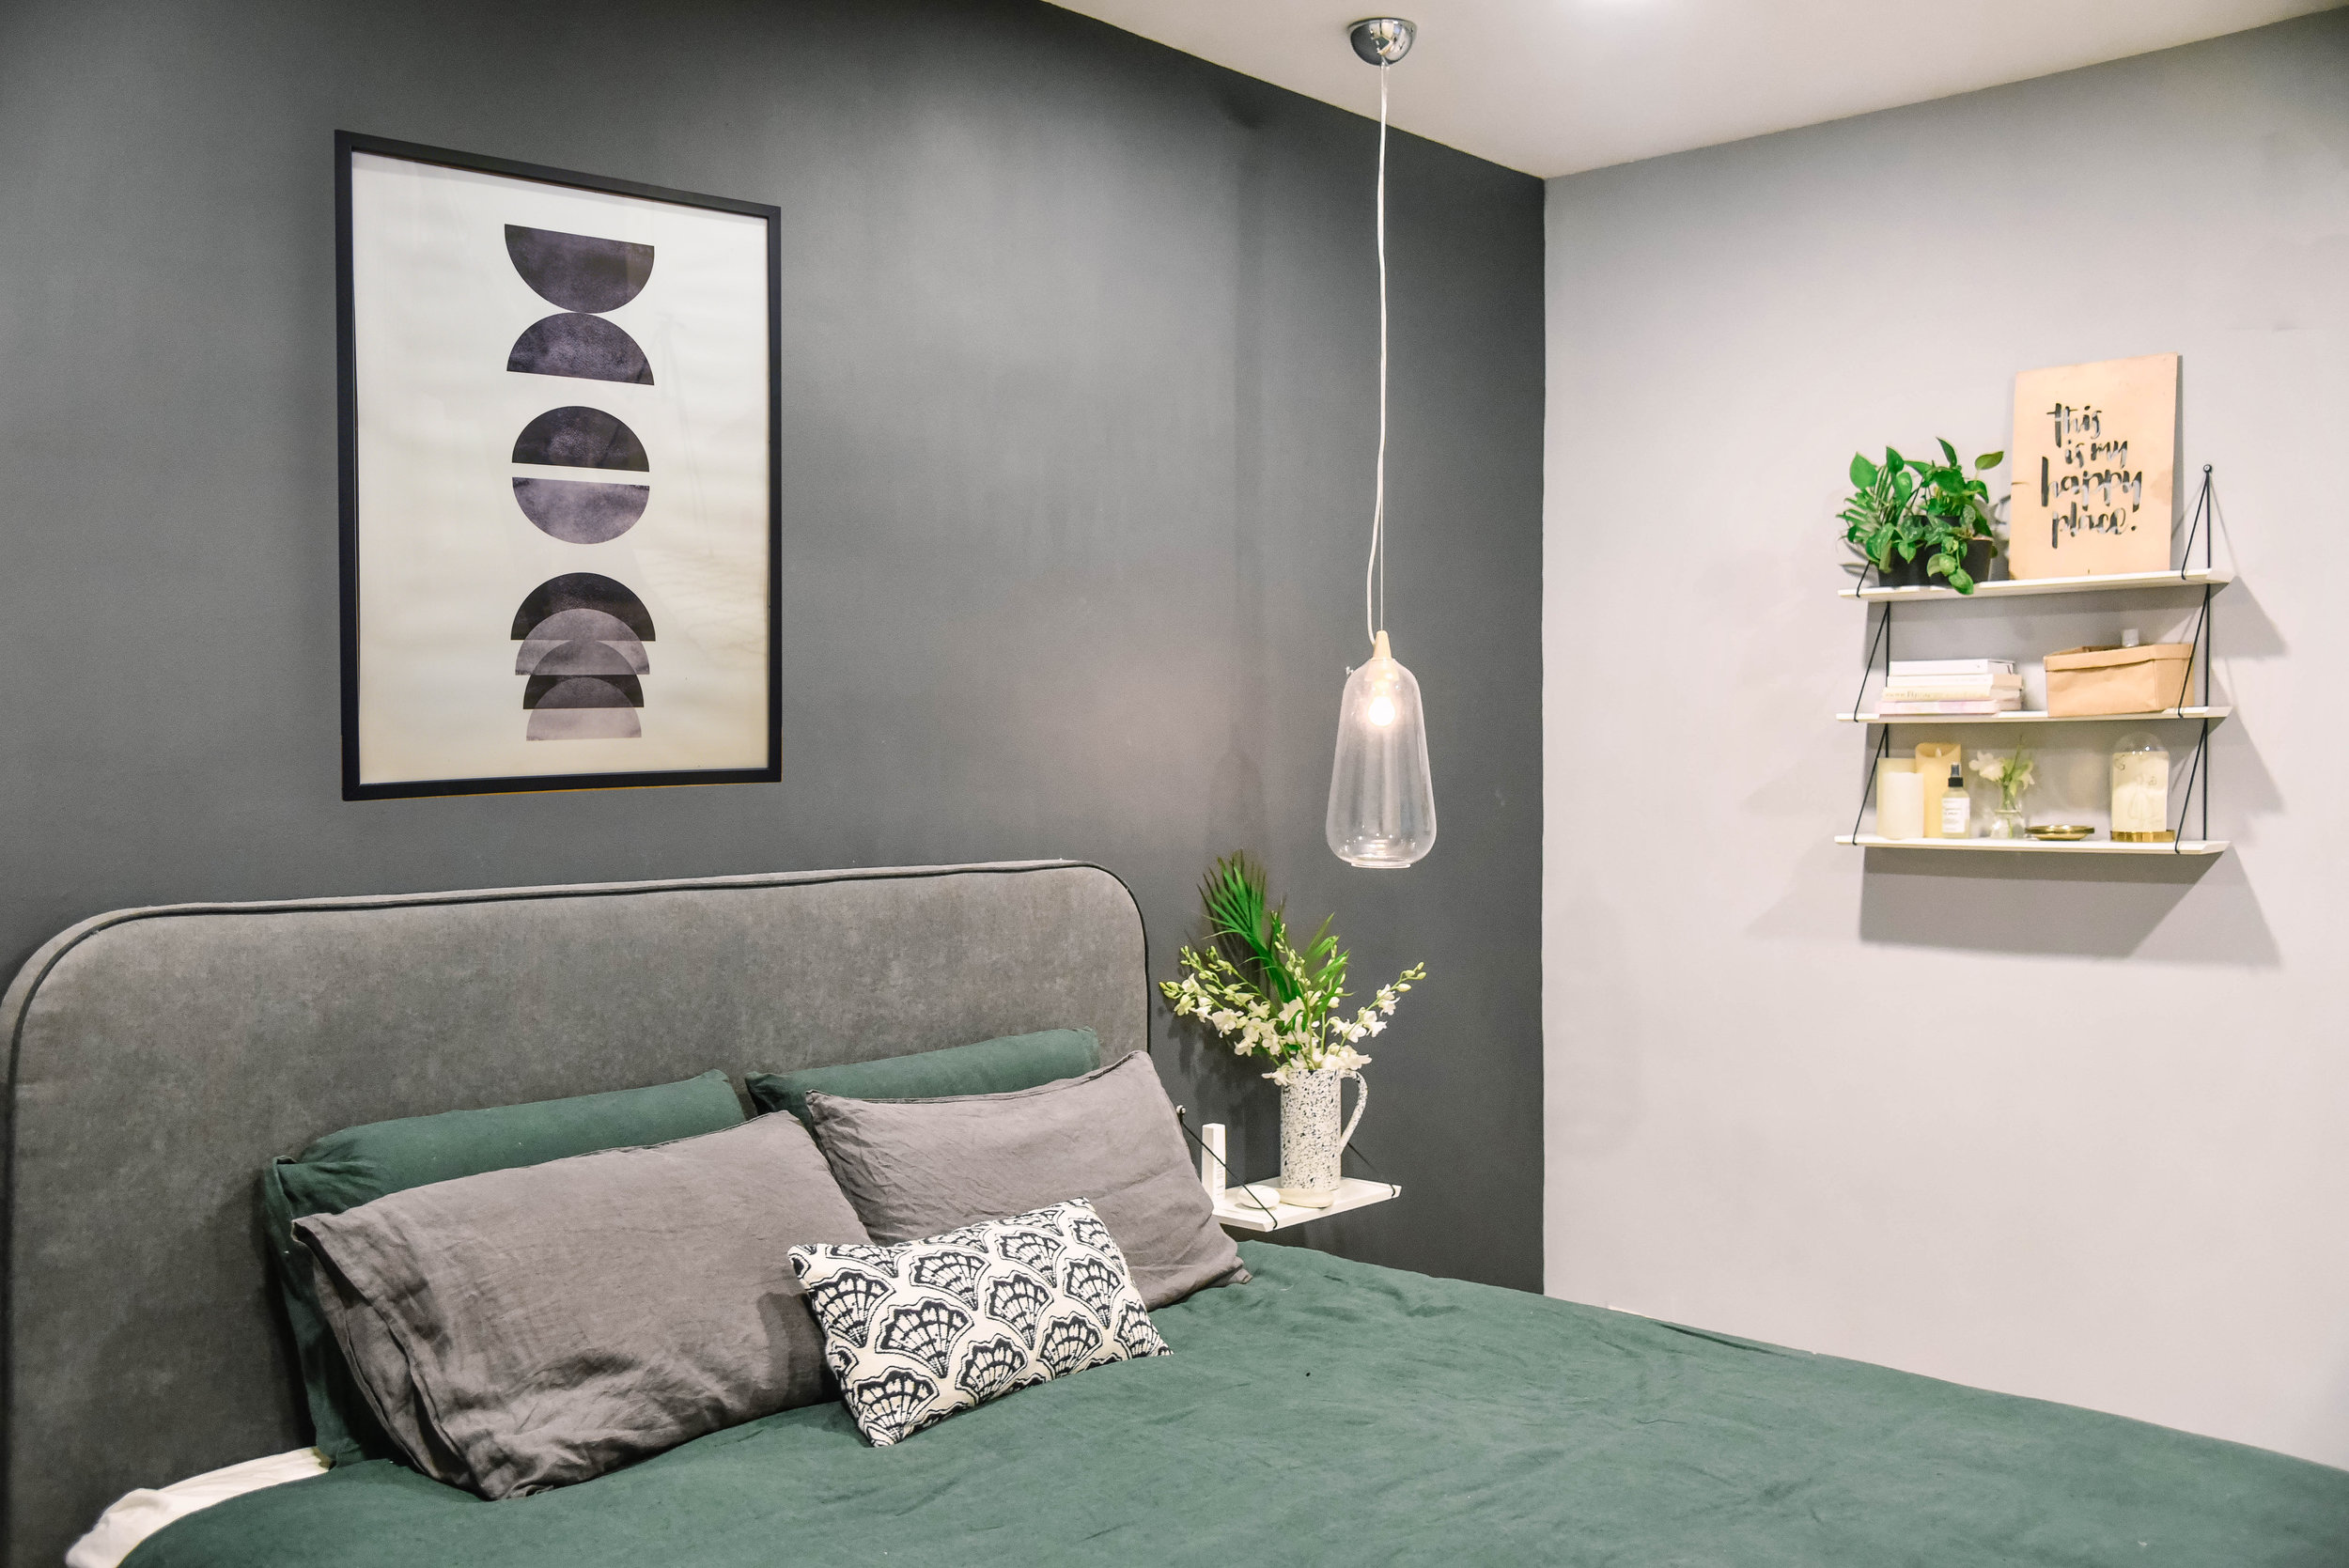 Cavenagh Rd Bedrooms-34 w poster.jpg